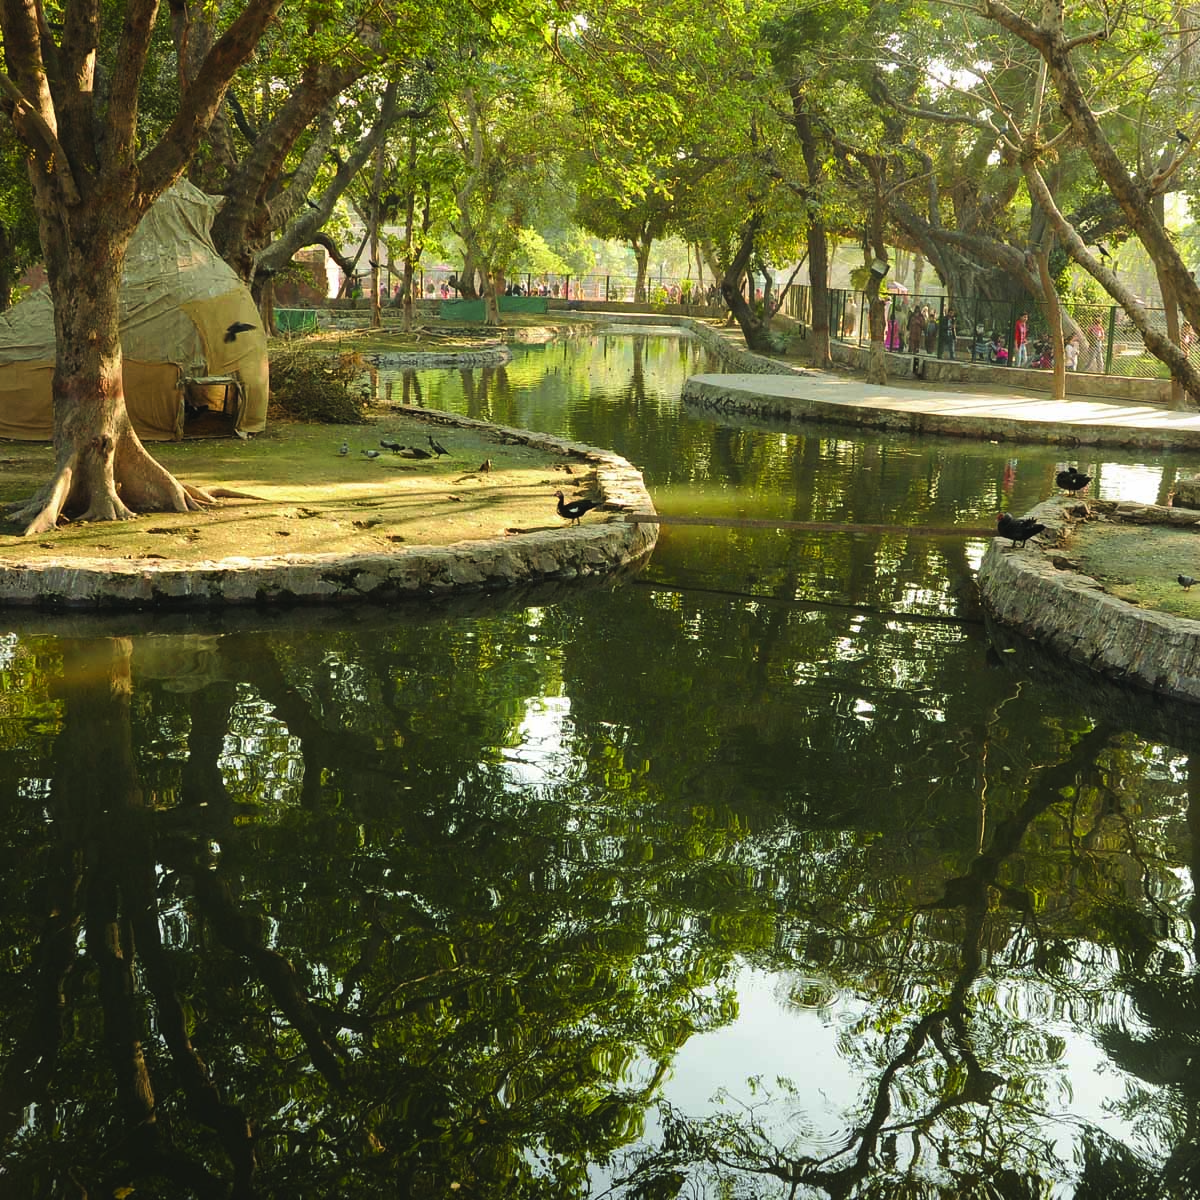 lahore zoo preserves remains of endangered species